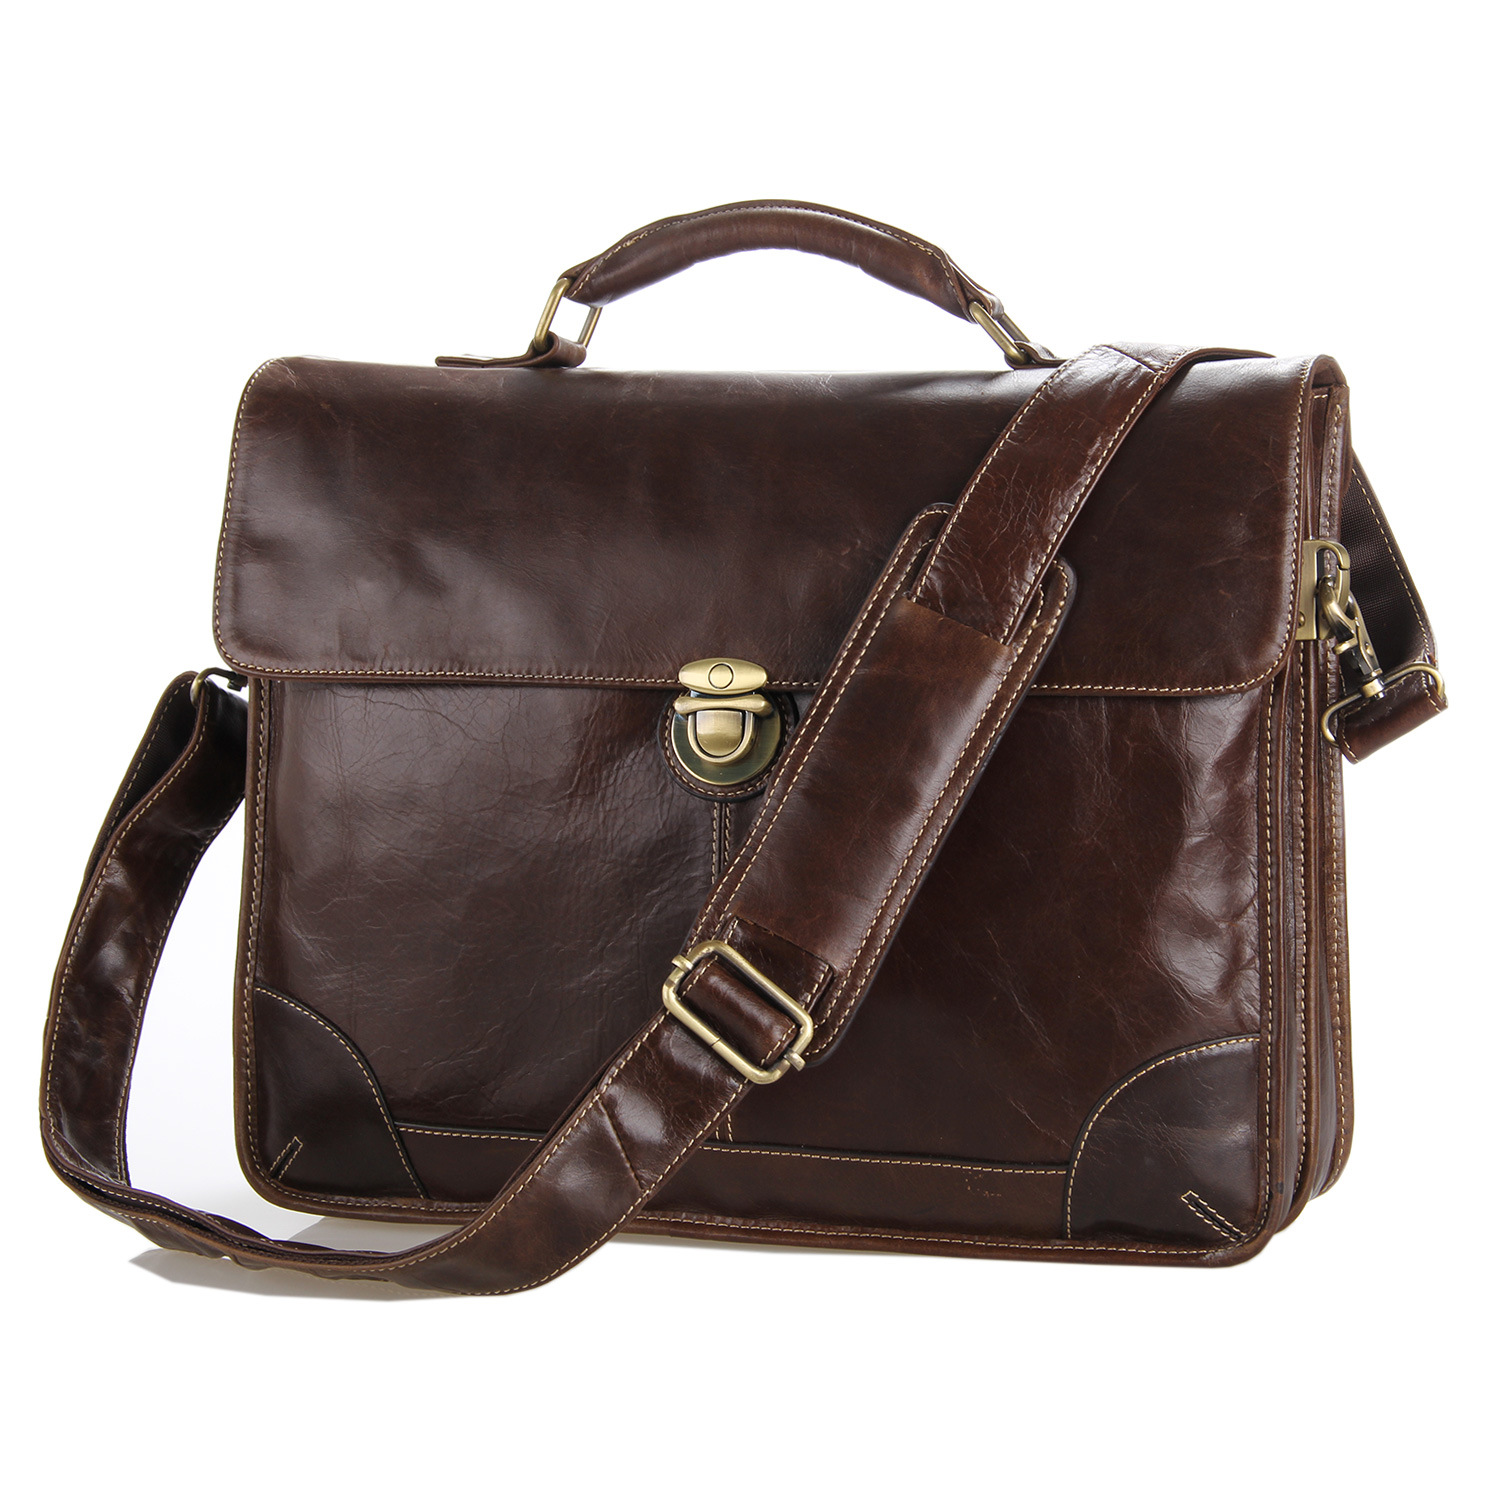 IMIDO genuine leather men briefcases messenger bag shoulder bag hand bag cross body bag diesel frill trim cross body bag